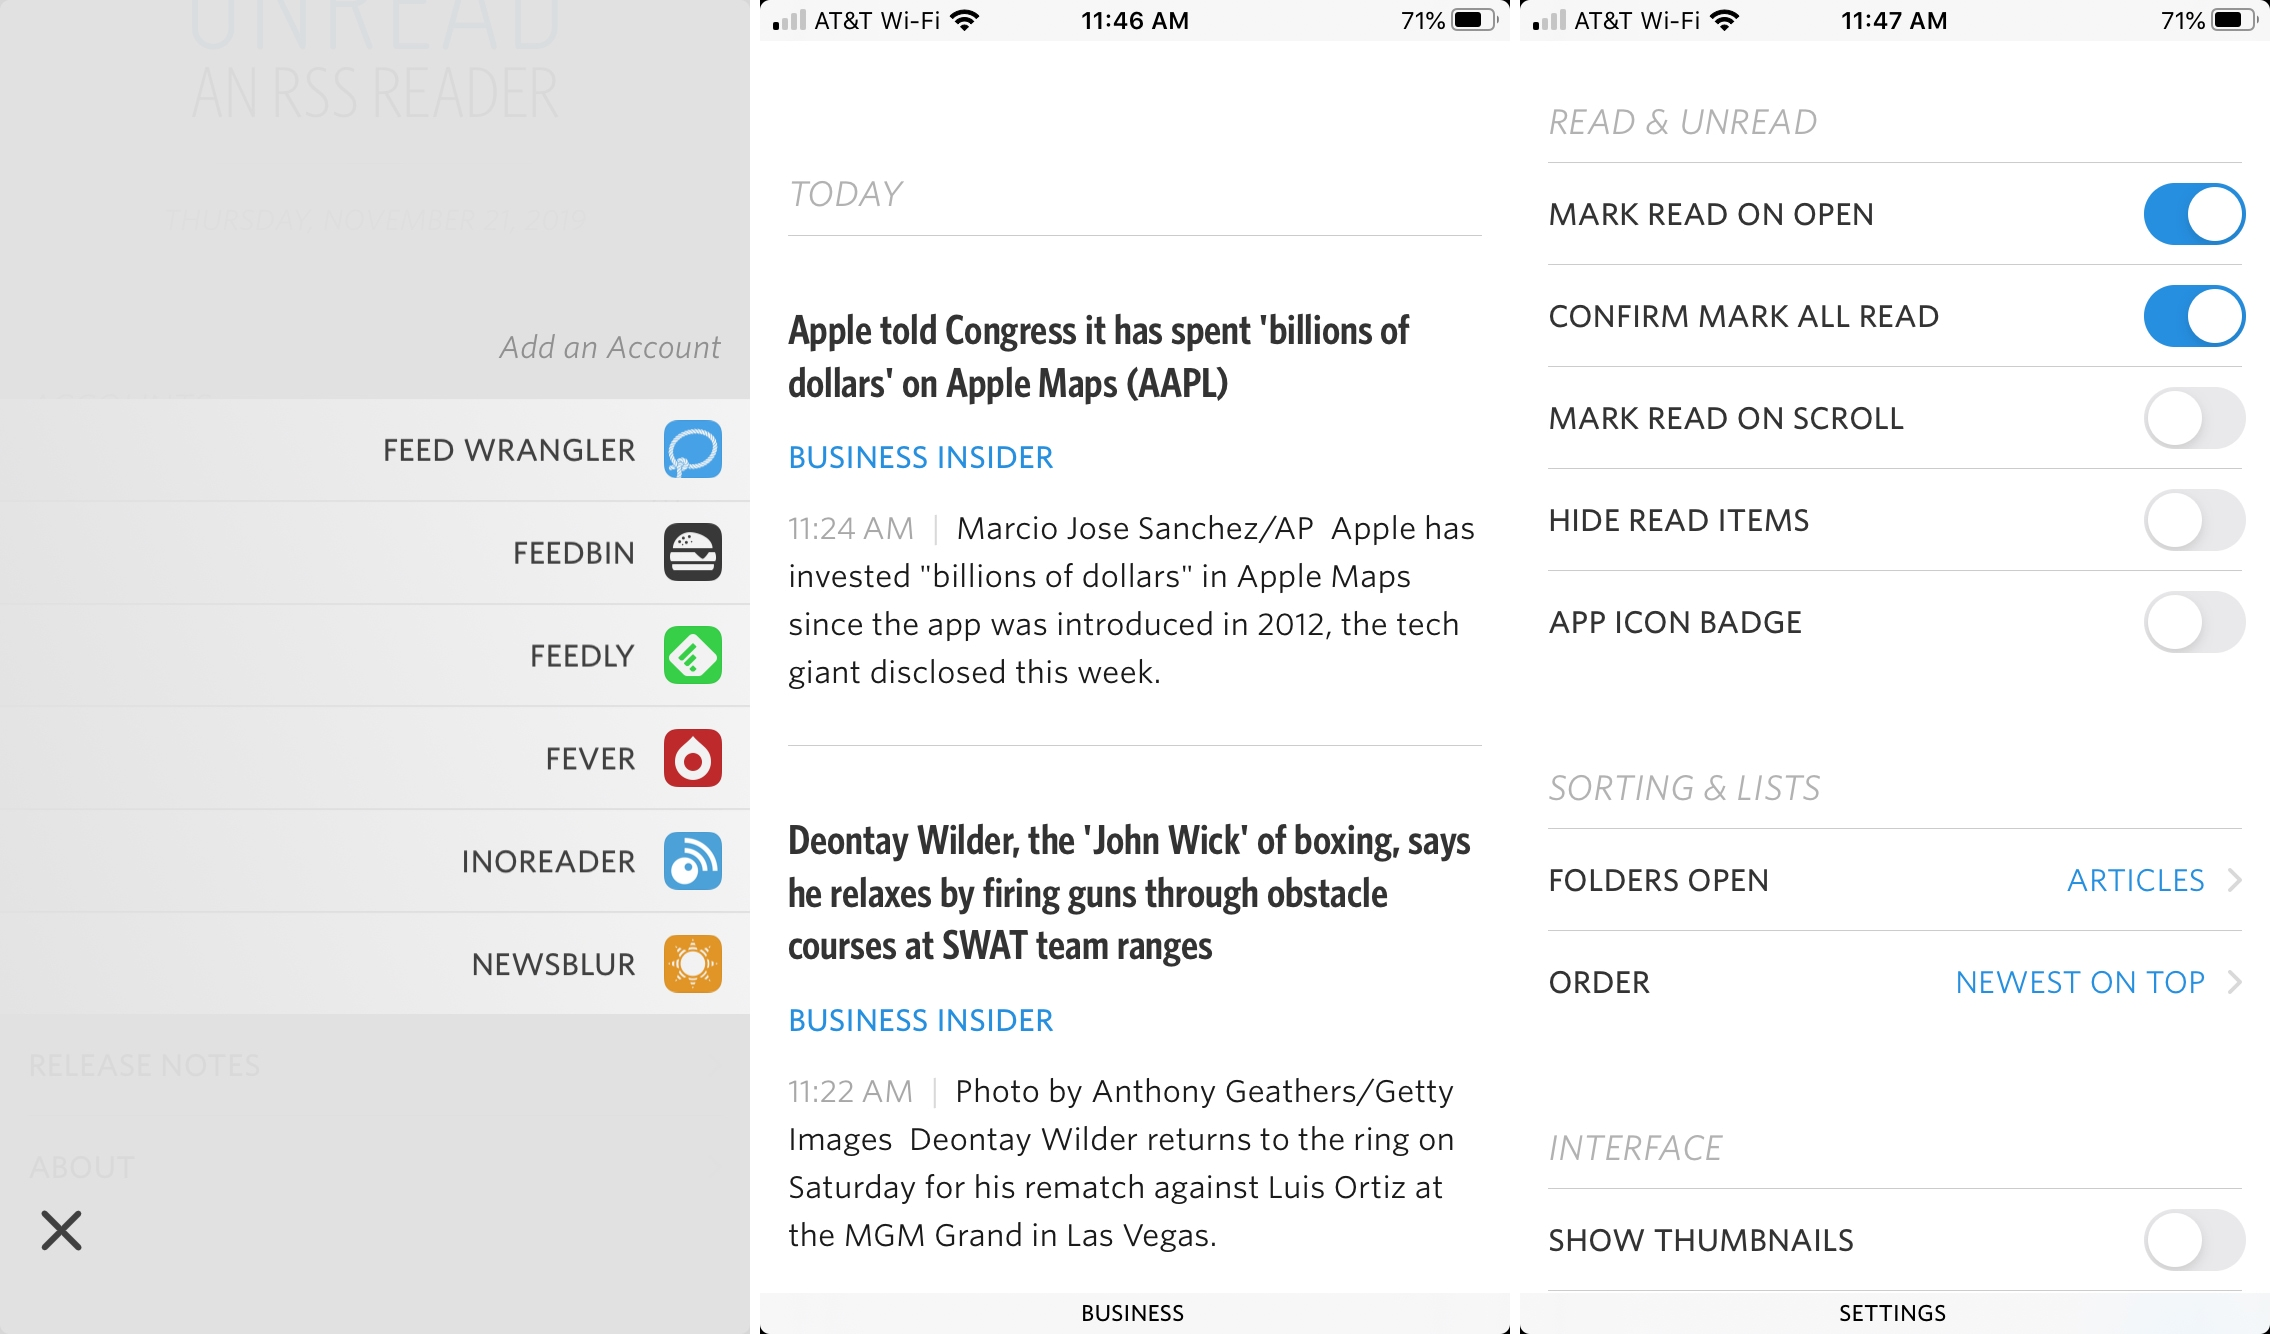 Unread iPhone RSS reader